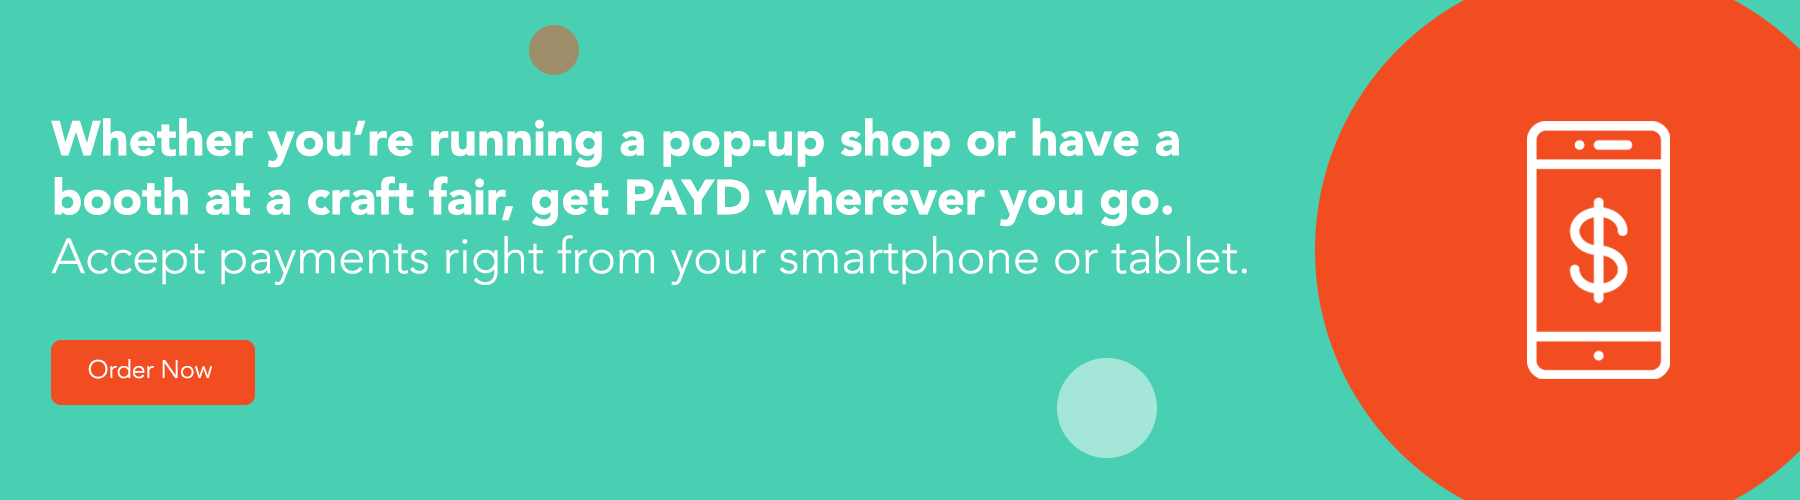 Whether you're running a pop-up shop or have a booth at a craft fair, get PAYD wherever you go. Accept payments right from your smartphone or tablet. Order Now.